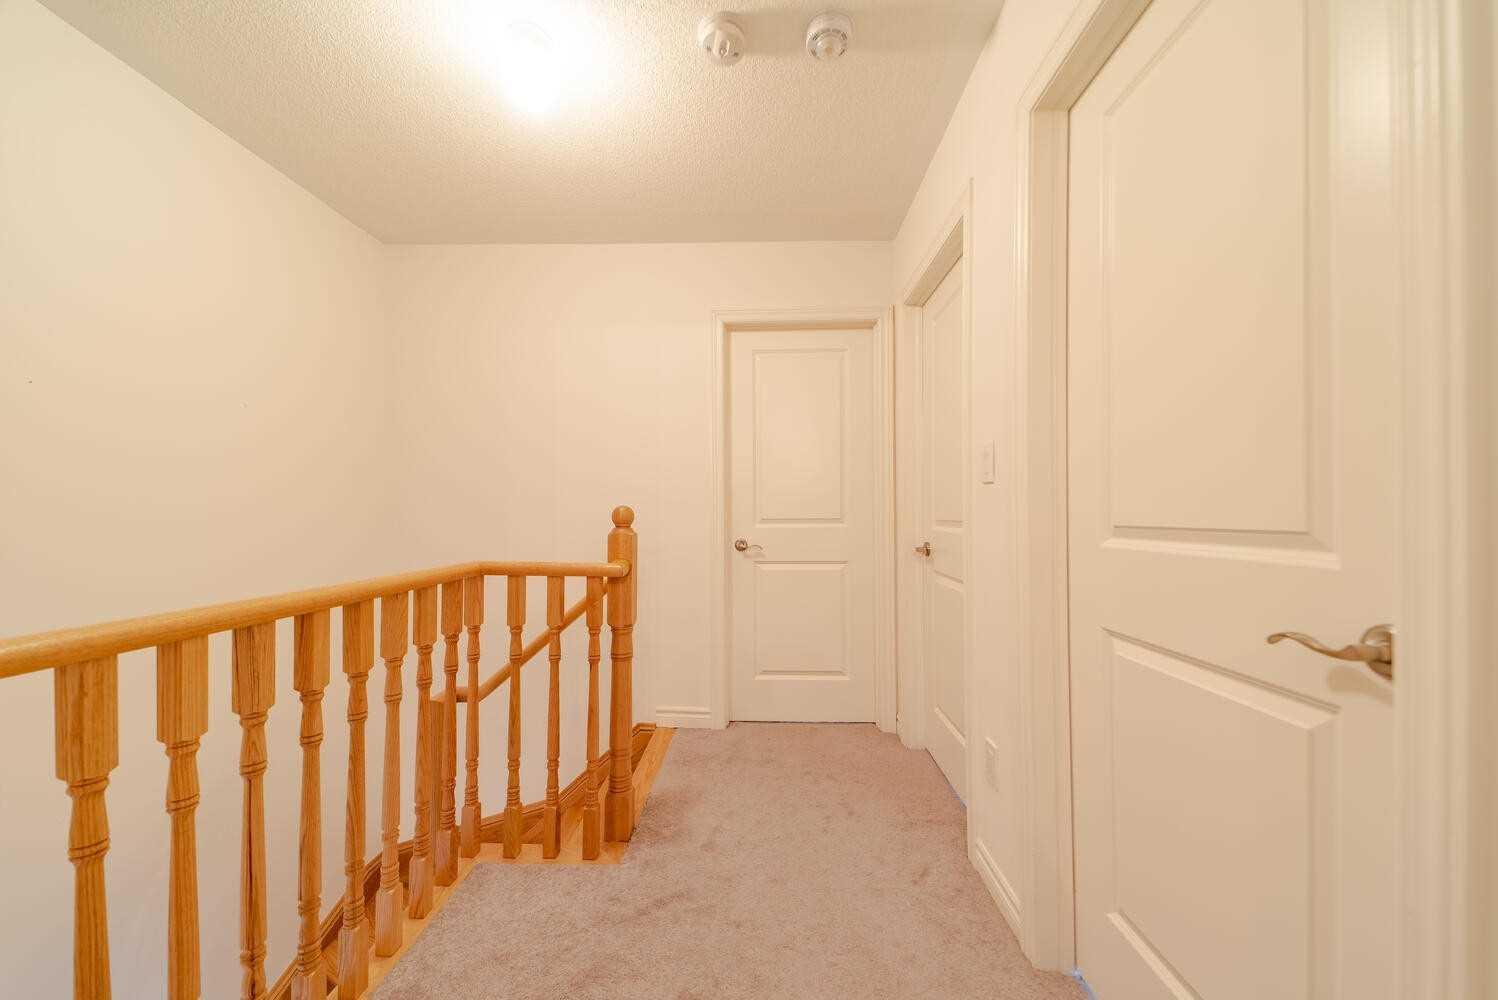 Image 19 of 40 showing inside of 3 Bedroom Condo Townhouse 2-Storey for Sale at 2738 William Jackson Dr Unit# 6, Pickering L1X0E6